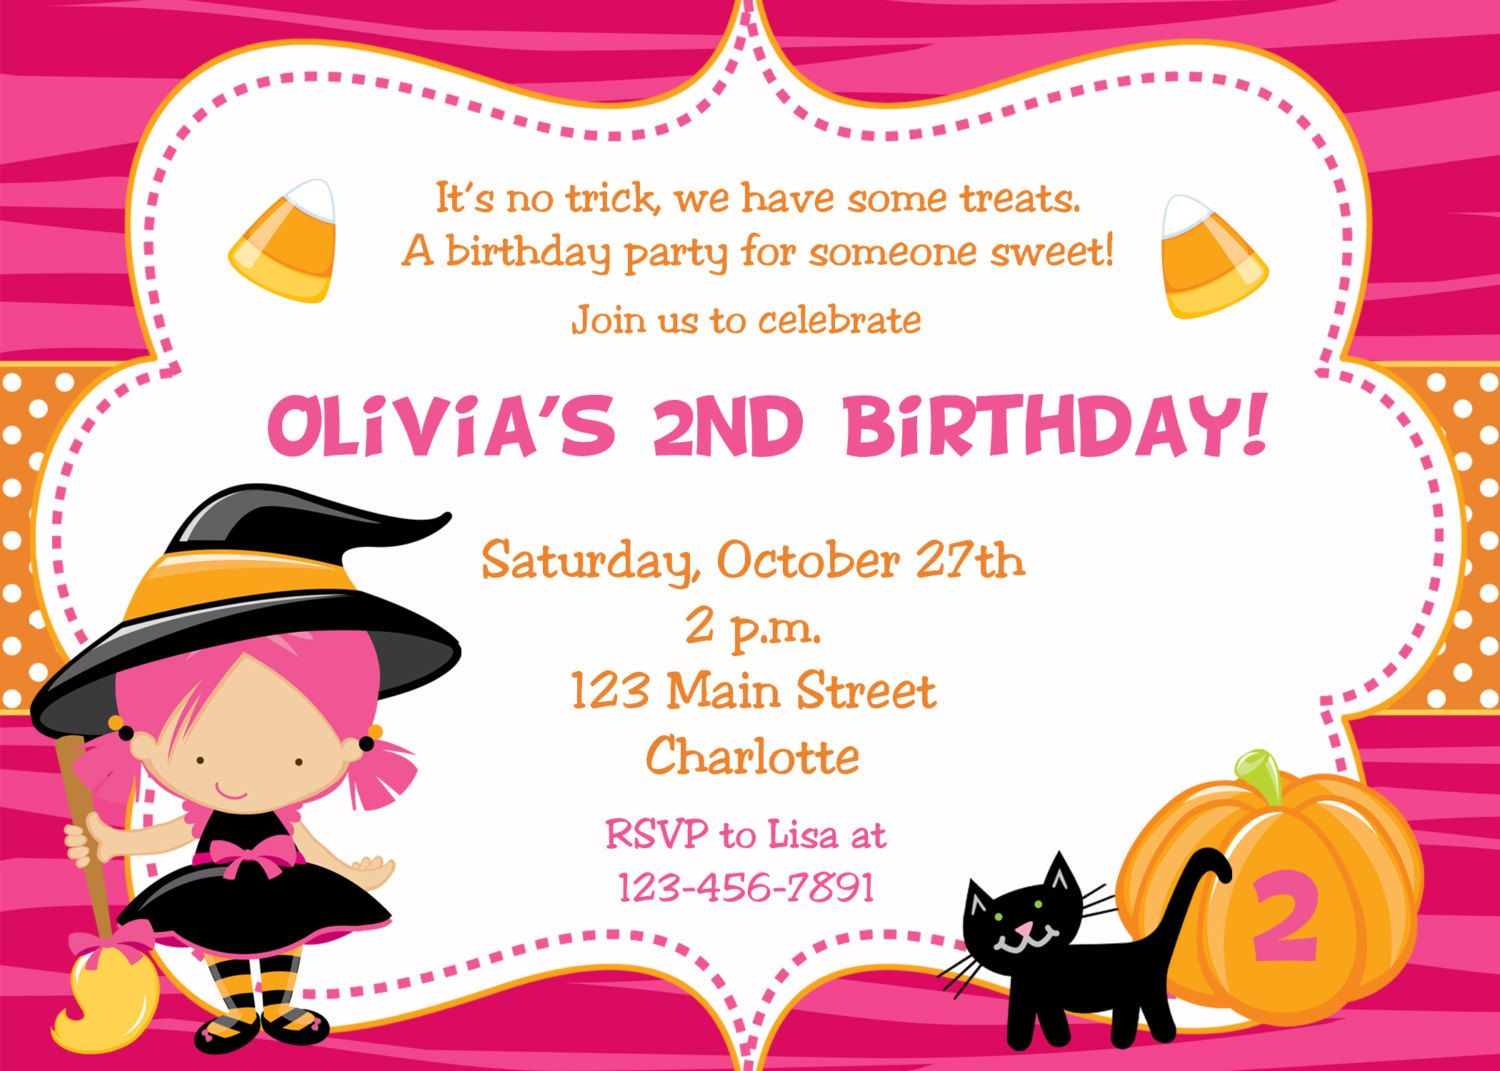 Halloween party invitation witch halloween birthday party halloween party invitation witch halloween birthday party invitation you print or i filmwisefo Gallery